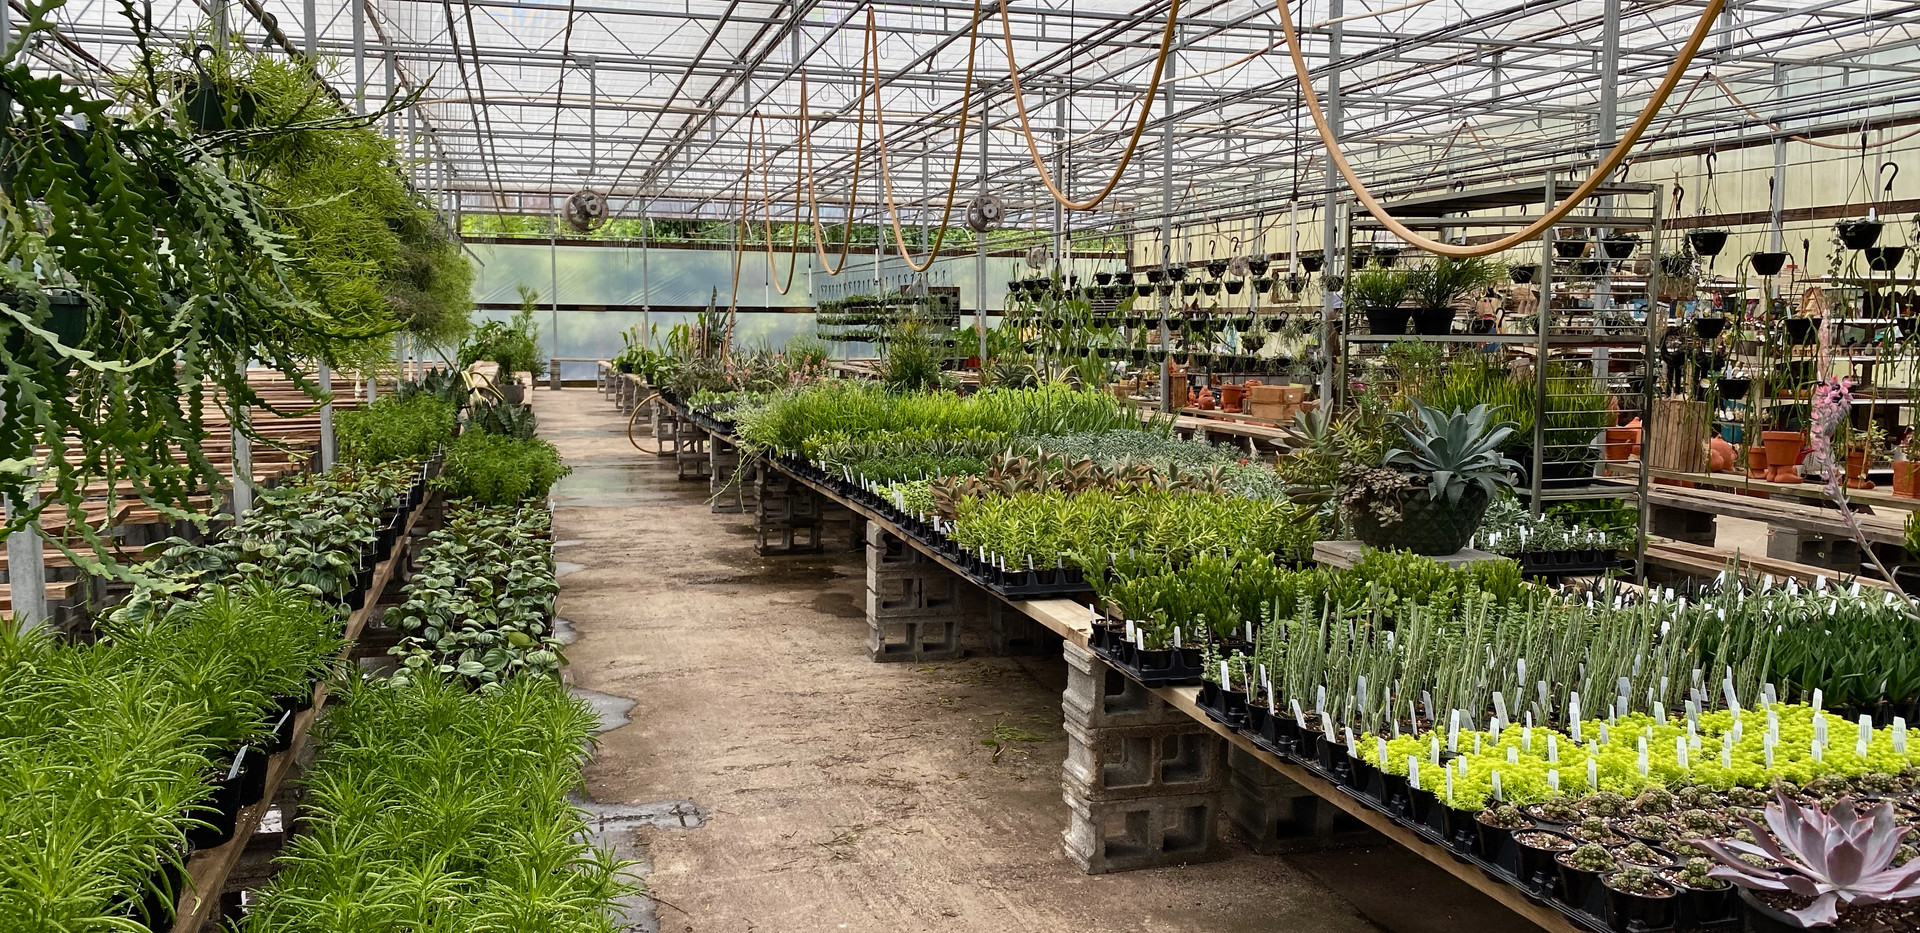 Not our full spring selection, but still a wide range of succulents!